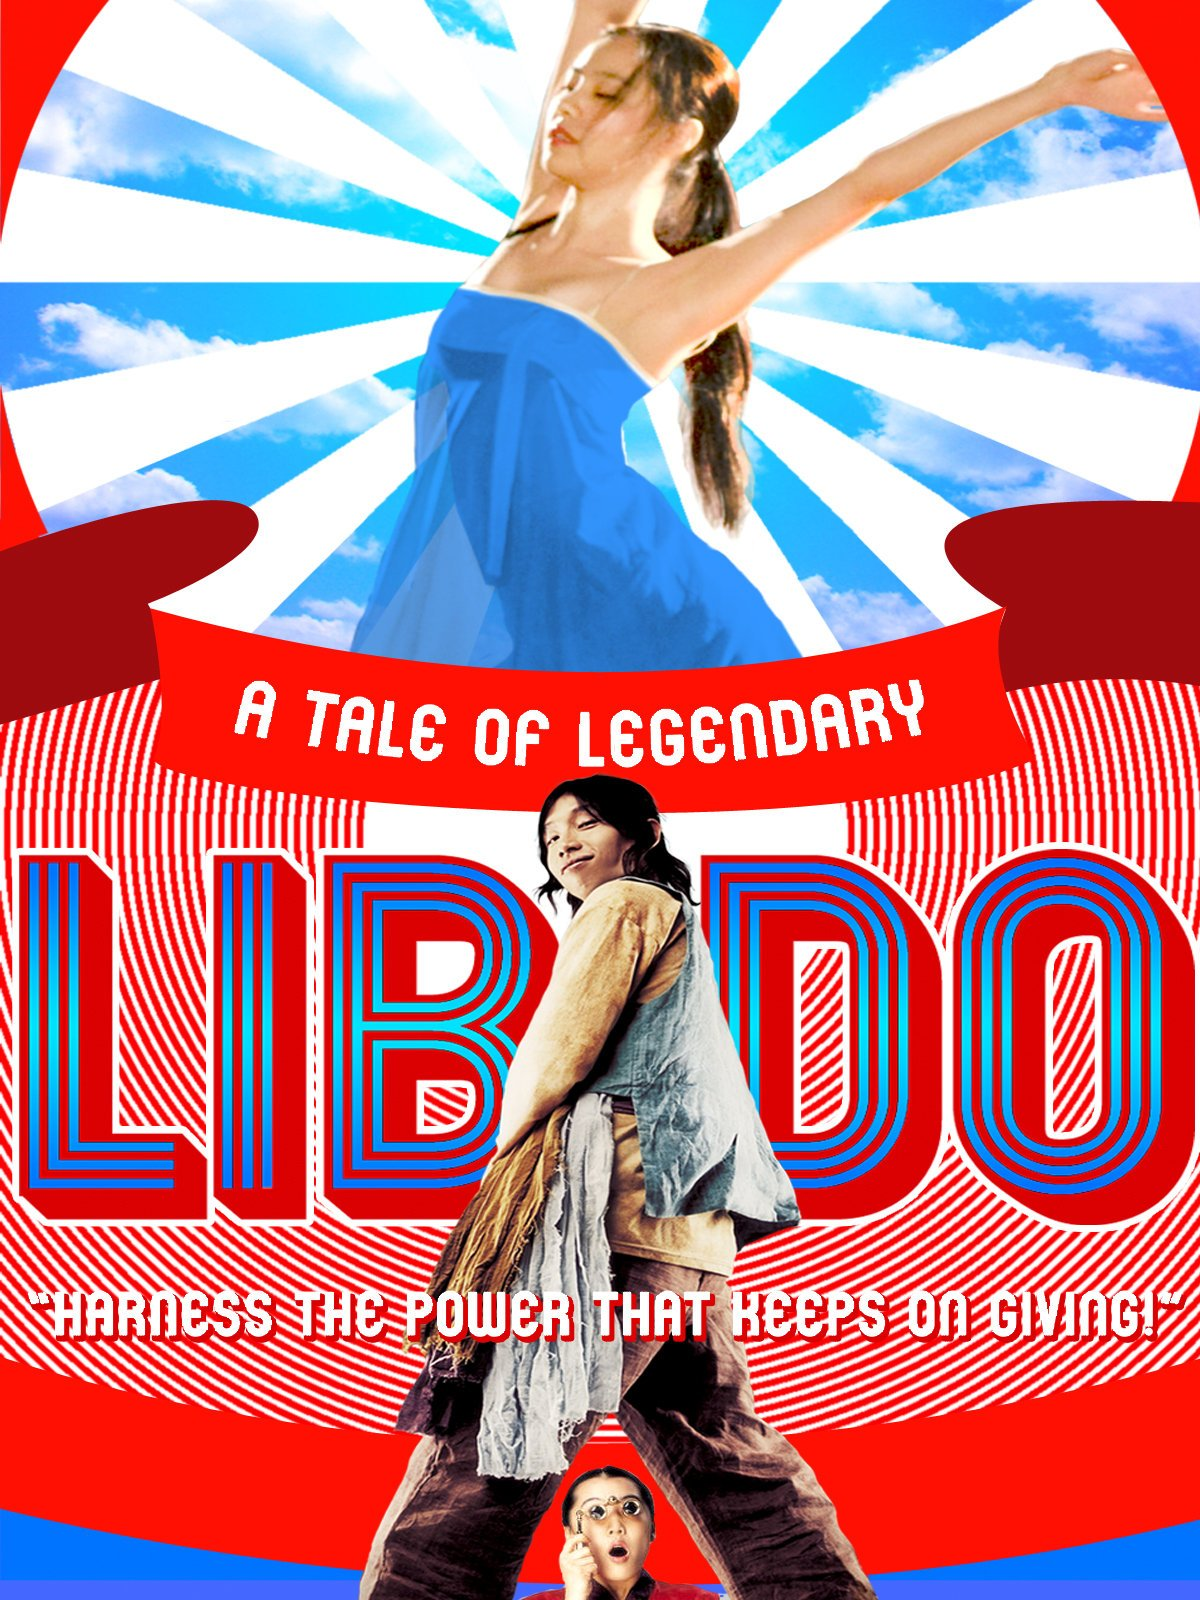 download a tale of legendary libido full movie sub indo